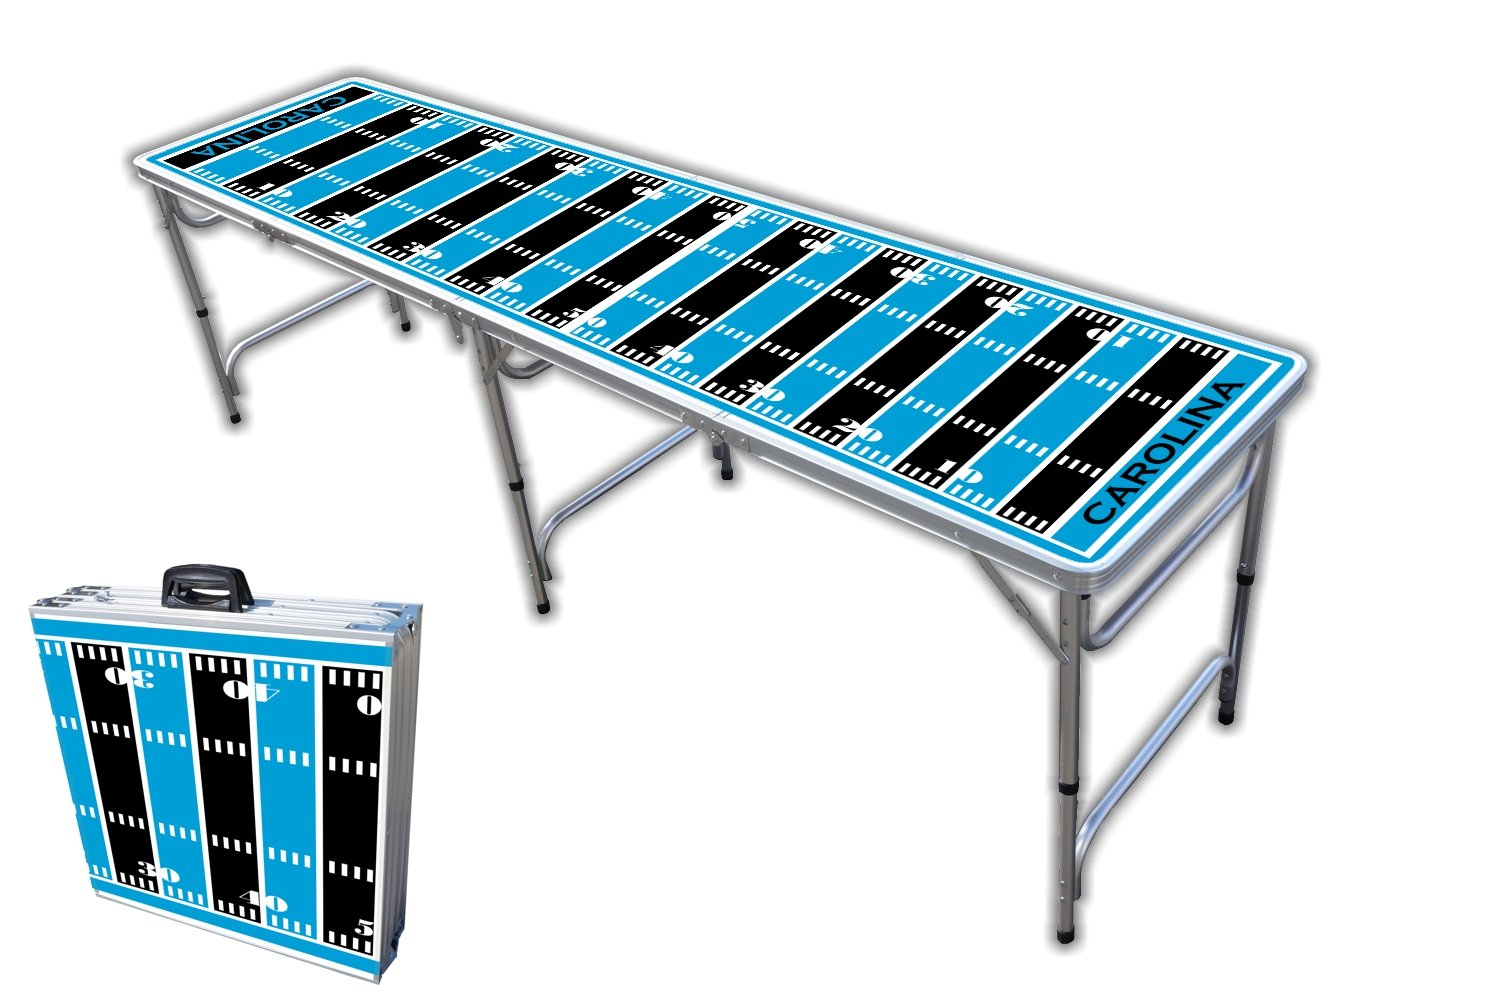 8-Foot Professional Beer Pong Table - Carolina Football Field Graphic by PartyPongTables.com